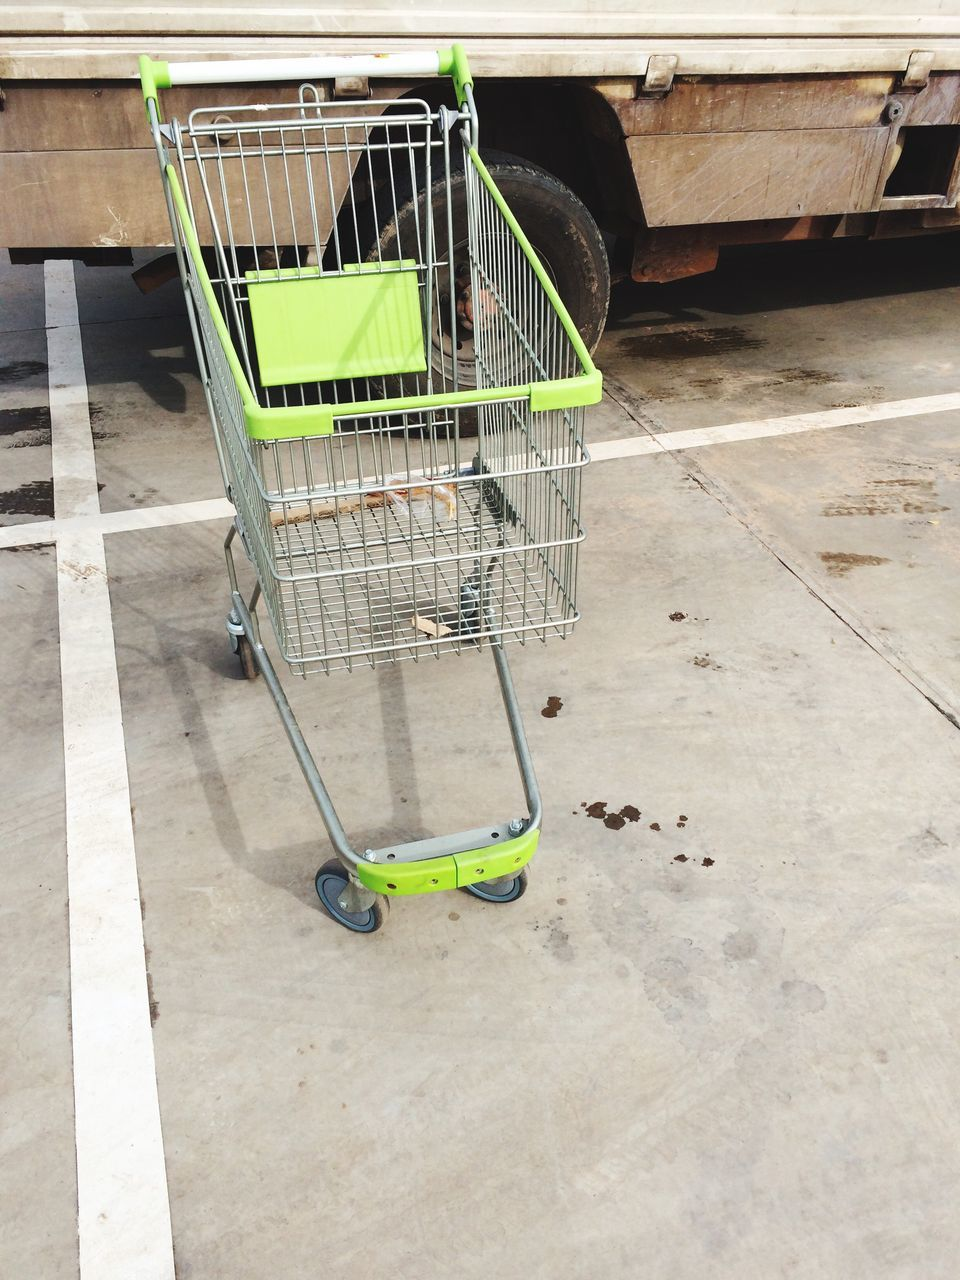 shopping cart, trolley, consumerism, no people, retail, day, outdoors, supermarket